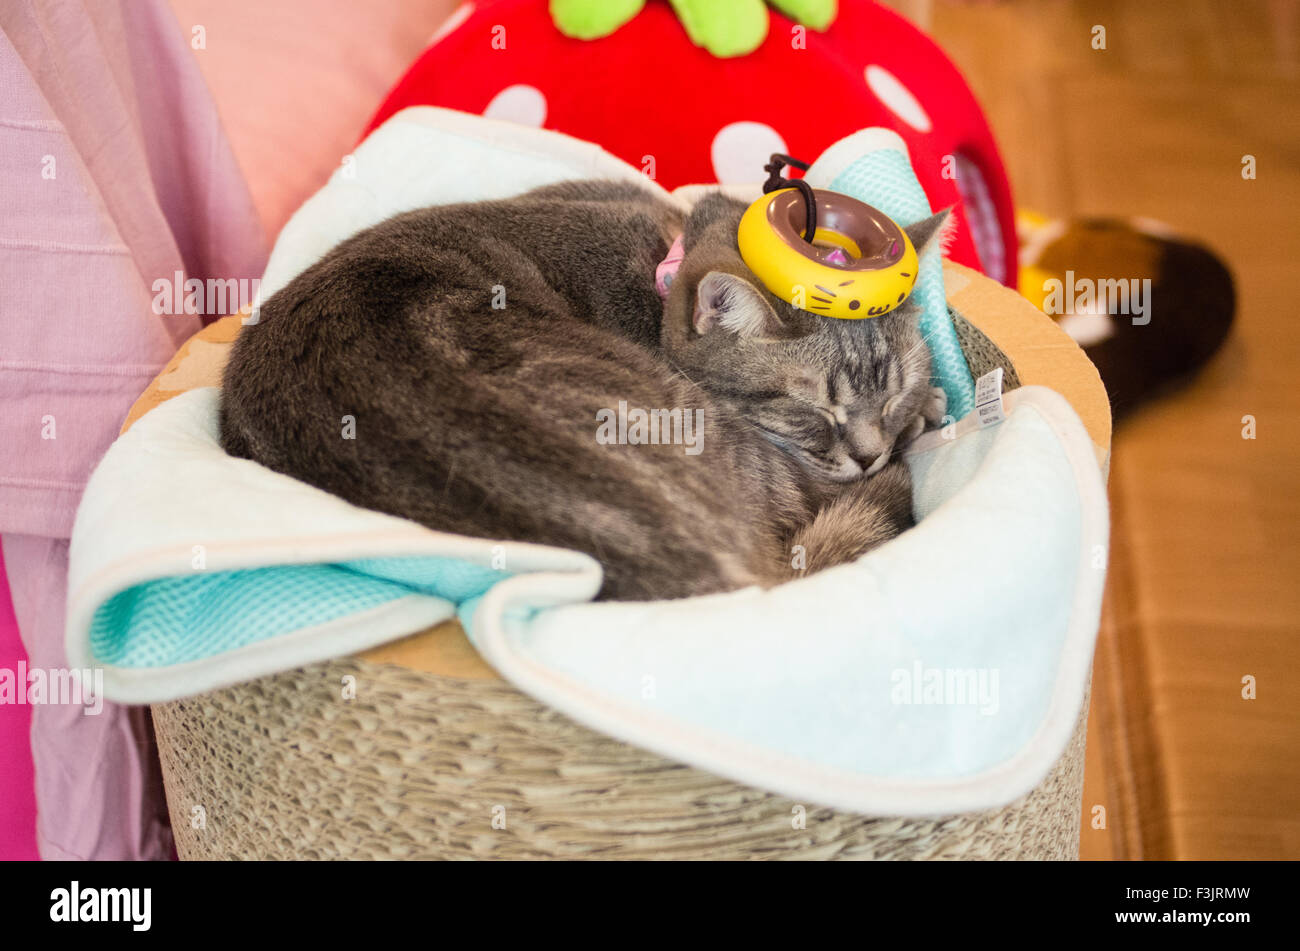 Cat resting at Happy Neko Cat Cafe in Shibuya, Tokyo, Japan with a kitten donut on its head Stock Photo